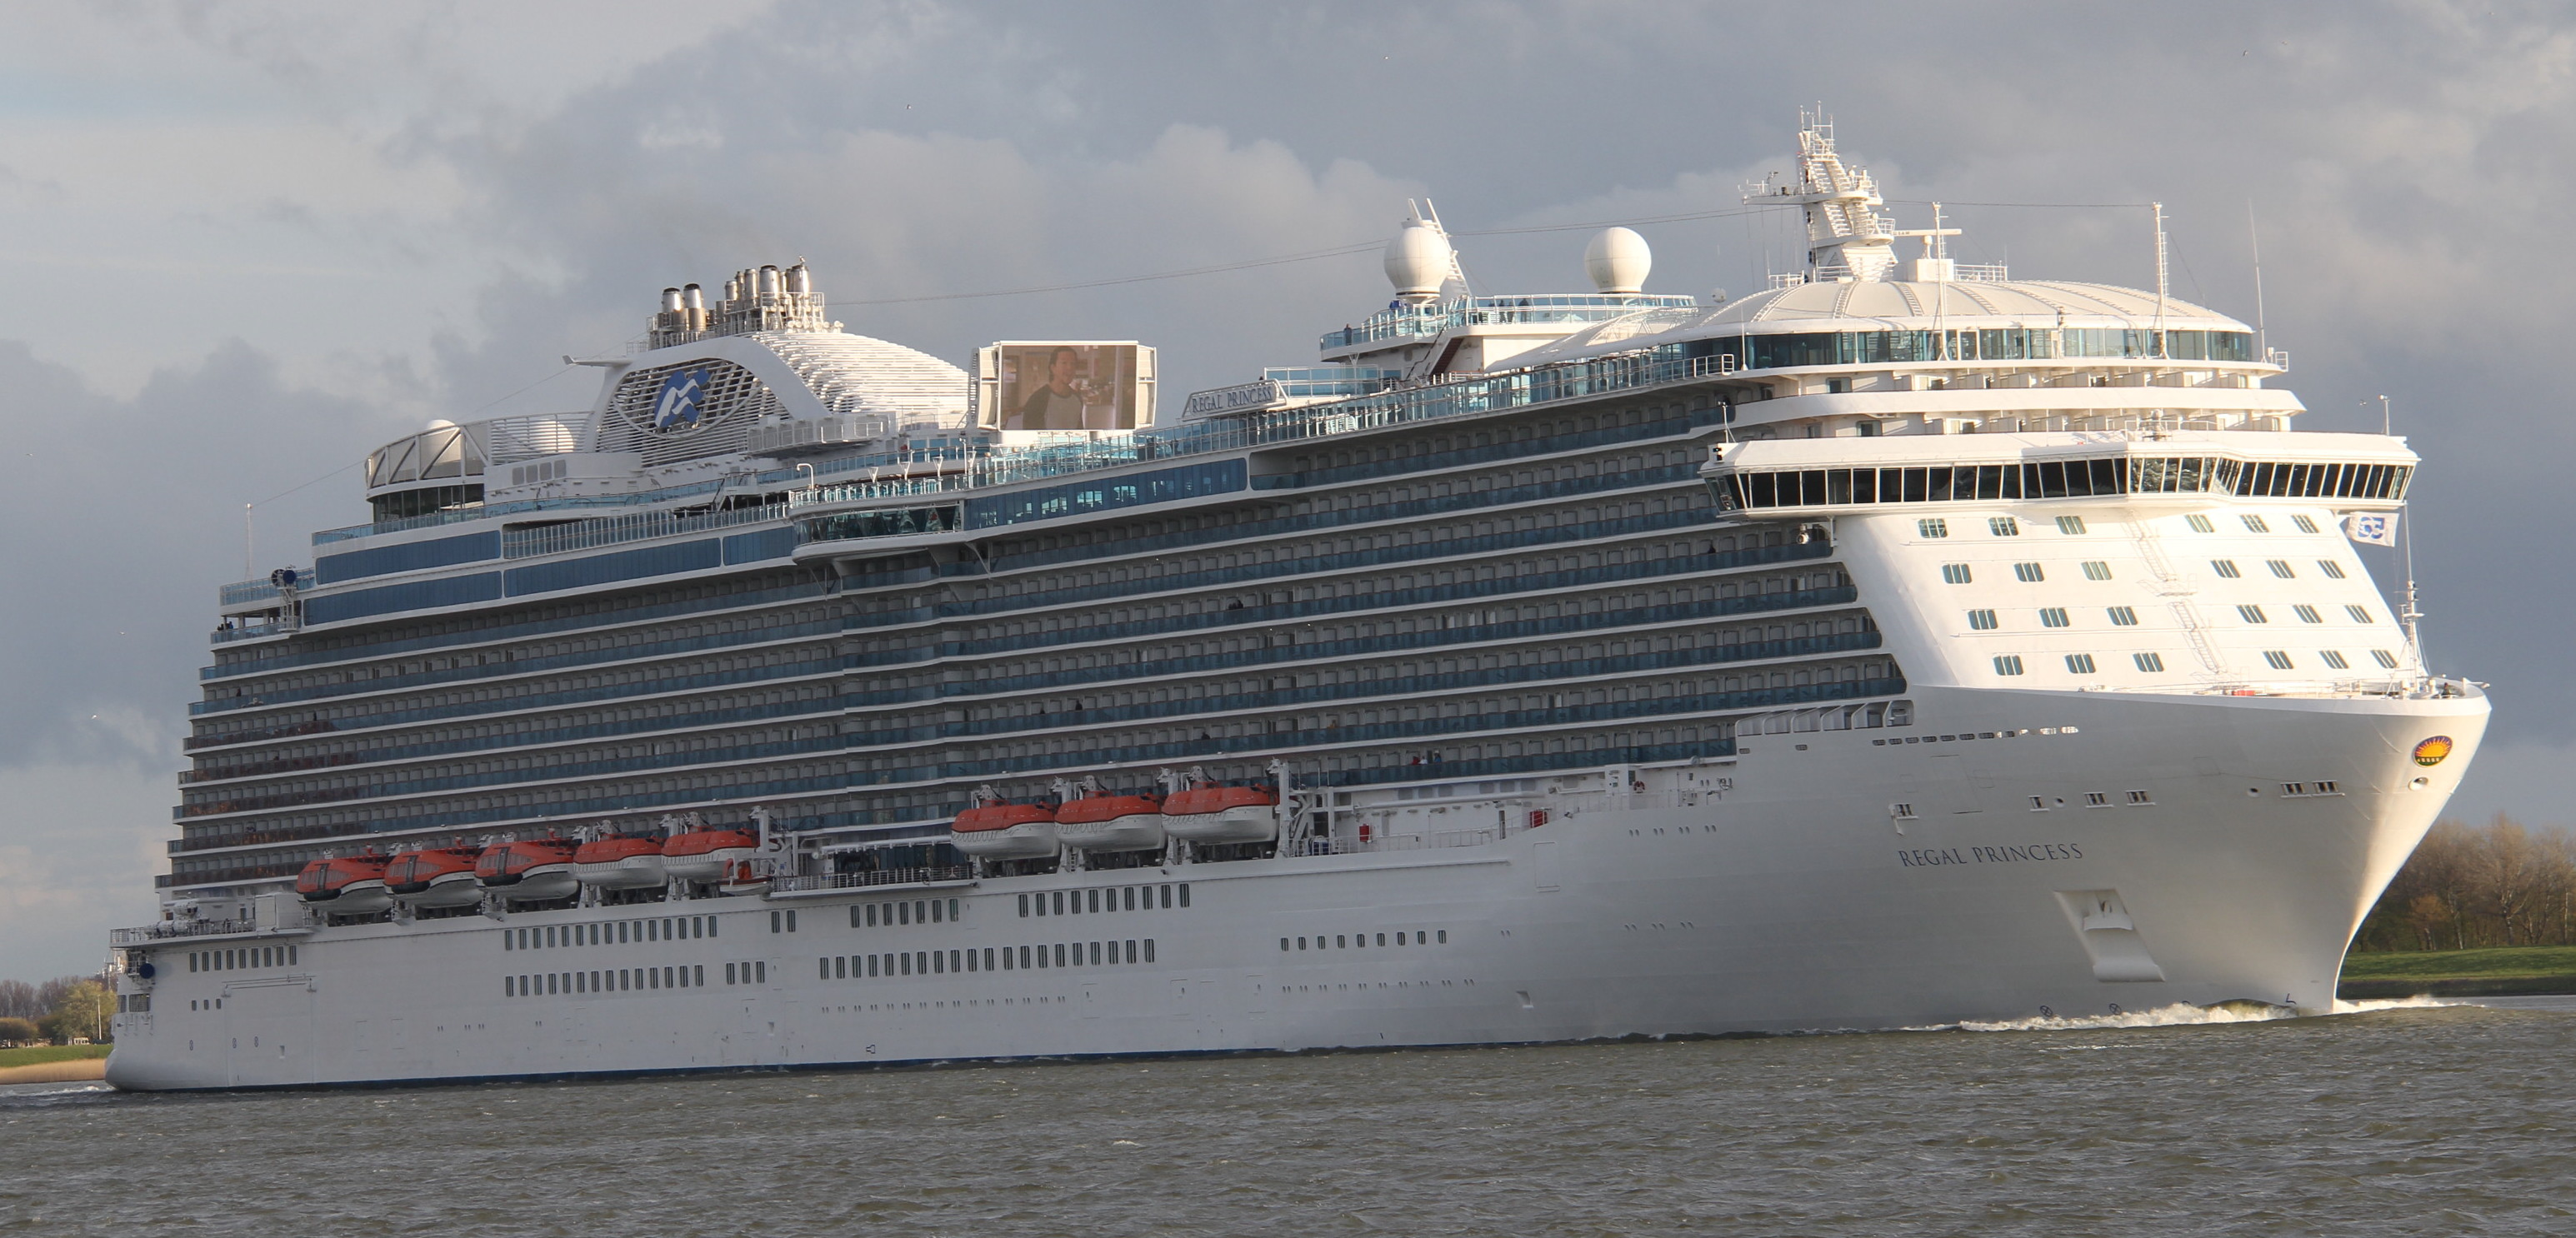 regalprincess01.jpg